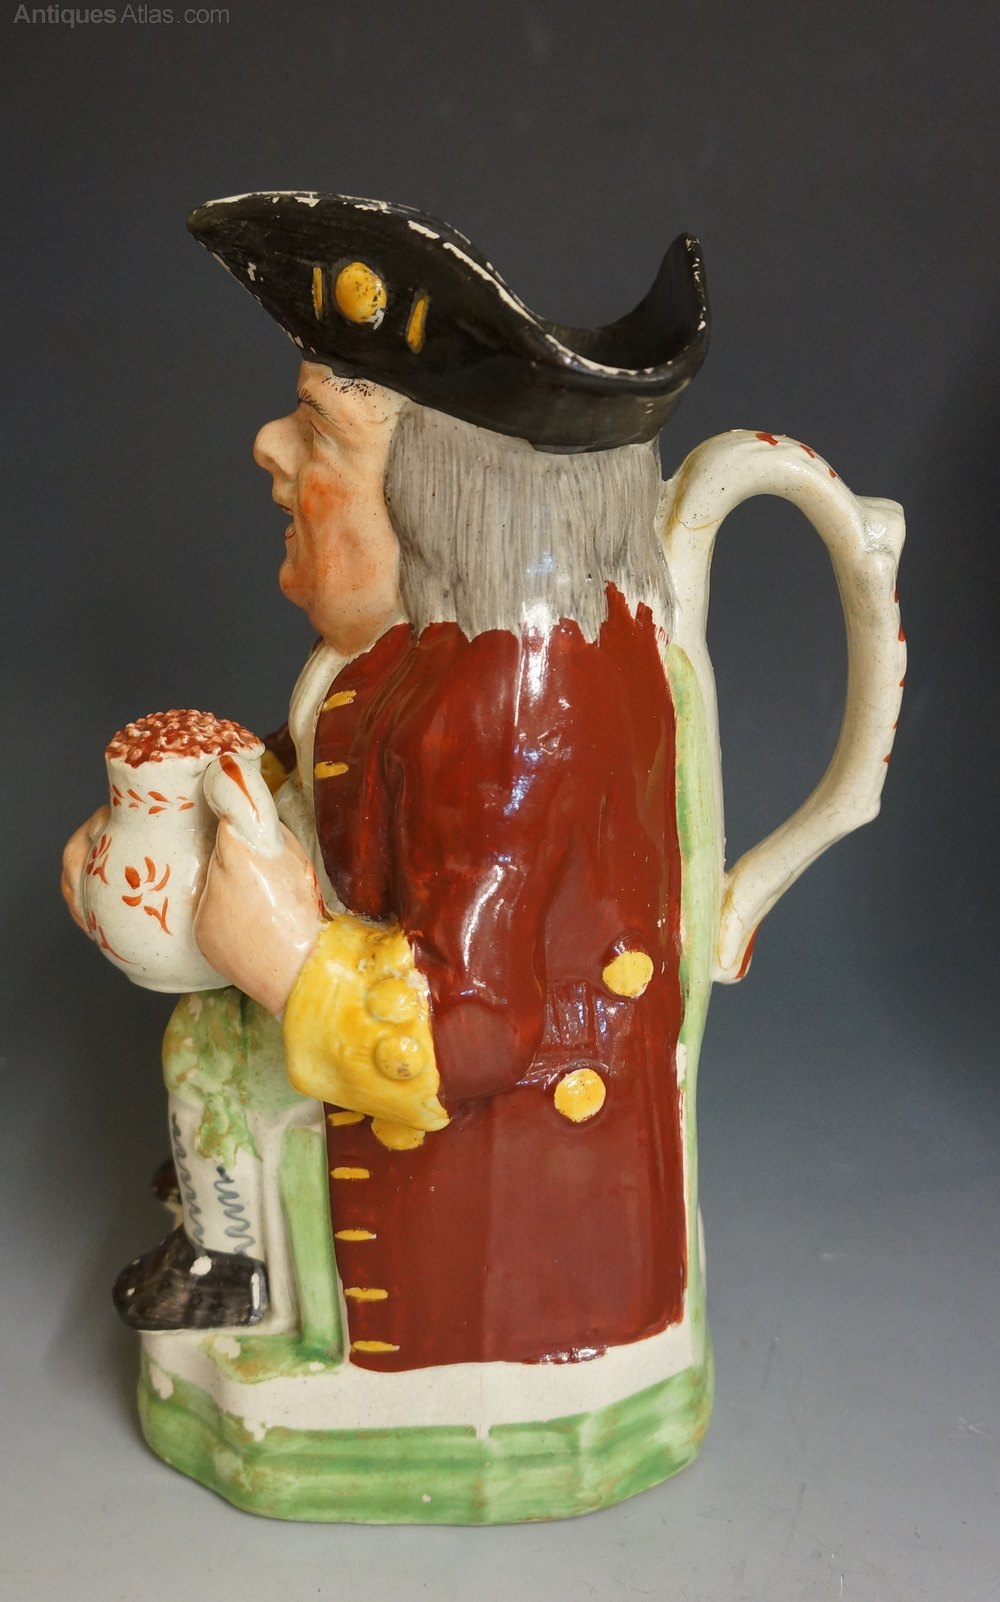 Stock Interiors Com >> Antiques Atlas - A Lovely 19th Century Toby Jug